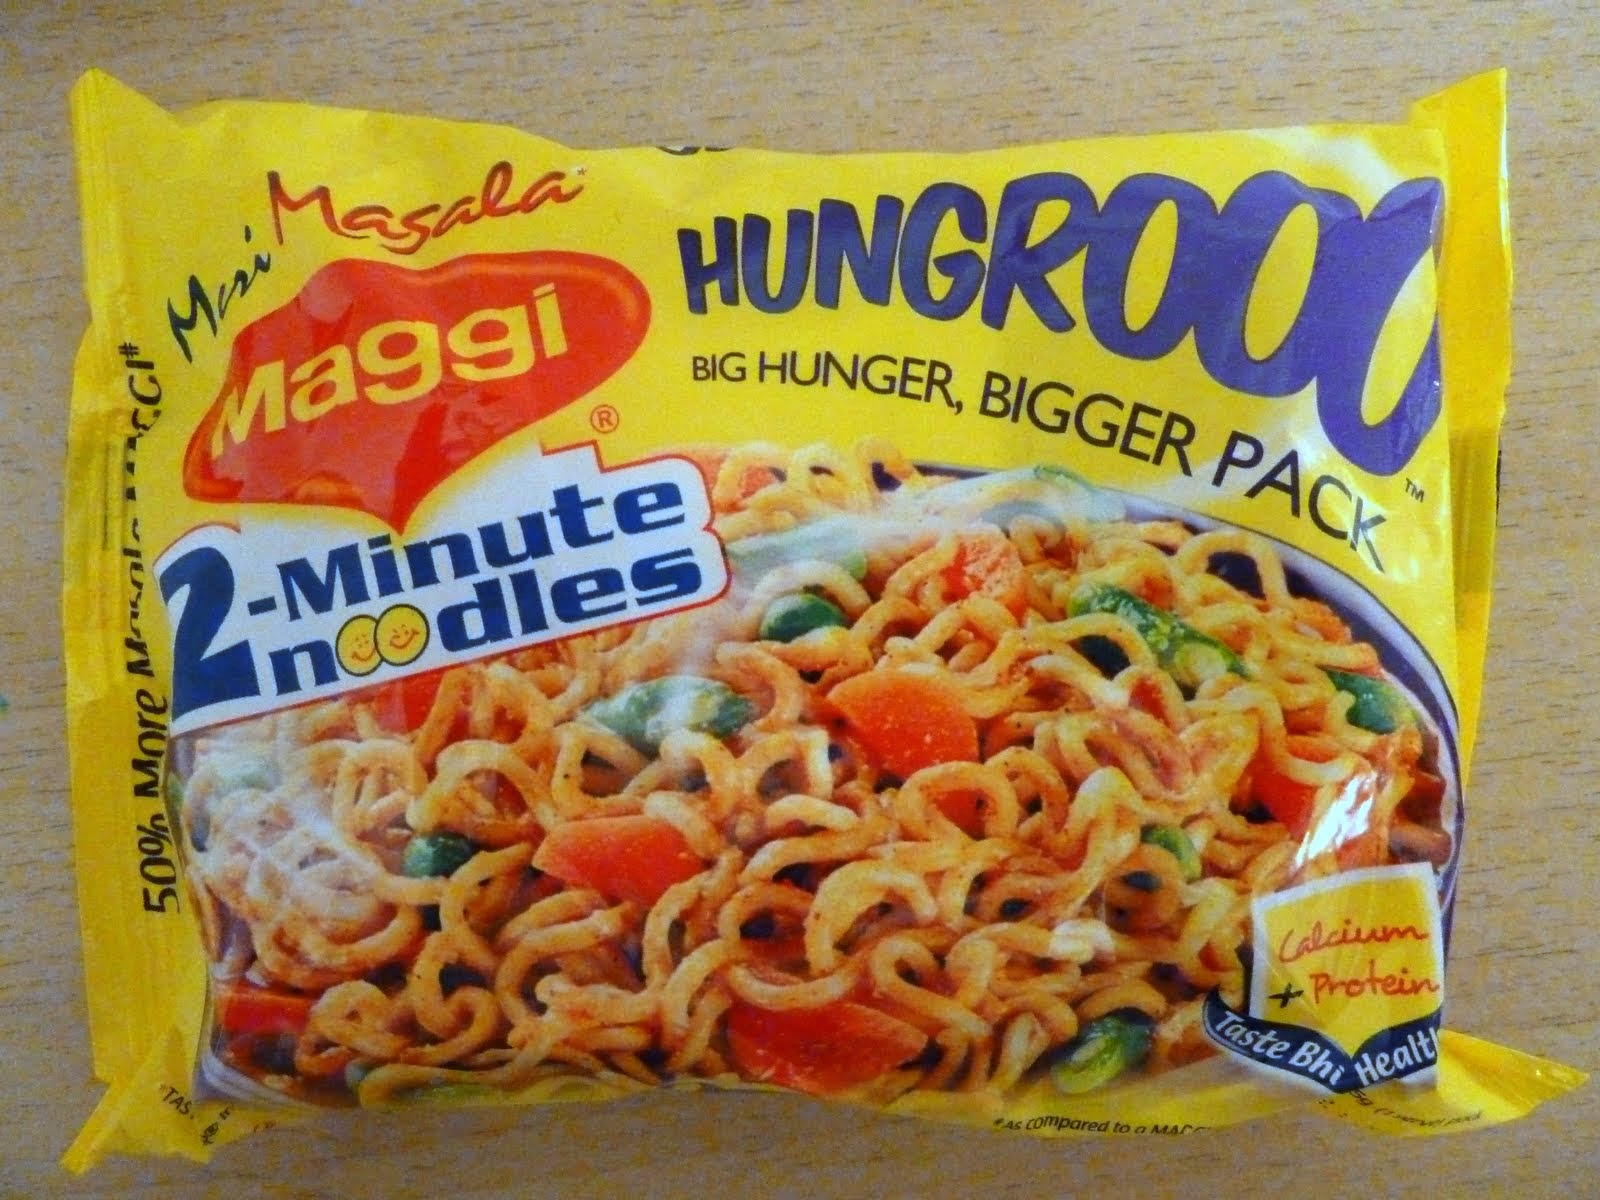 marketing mix of maggi noodles